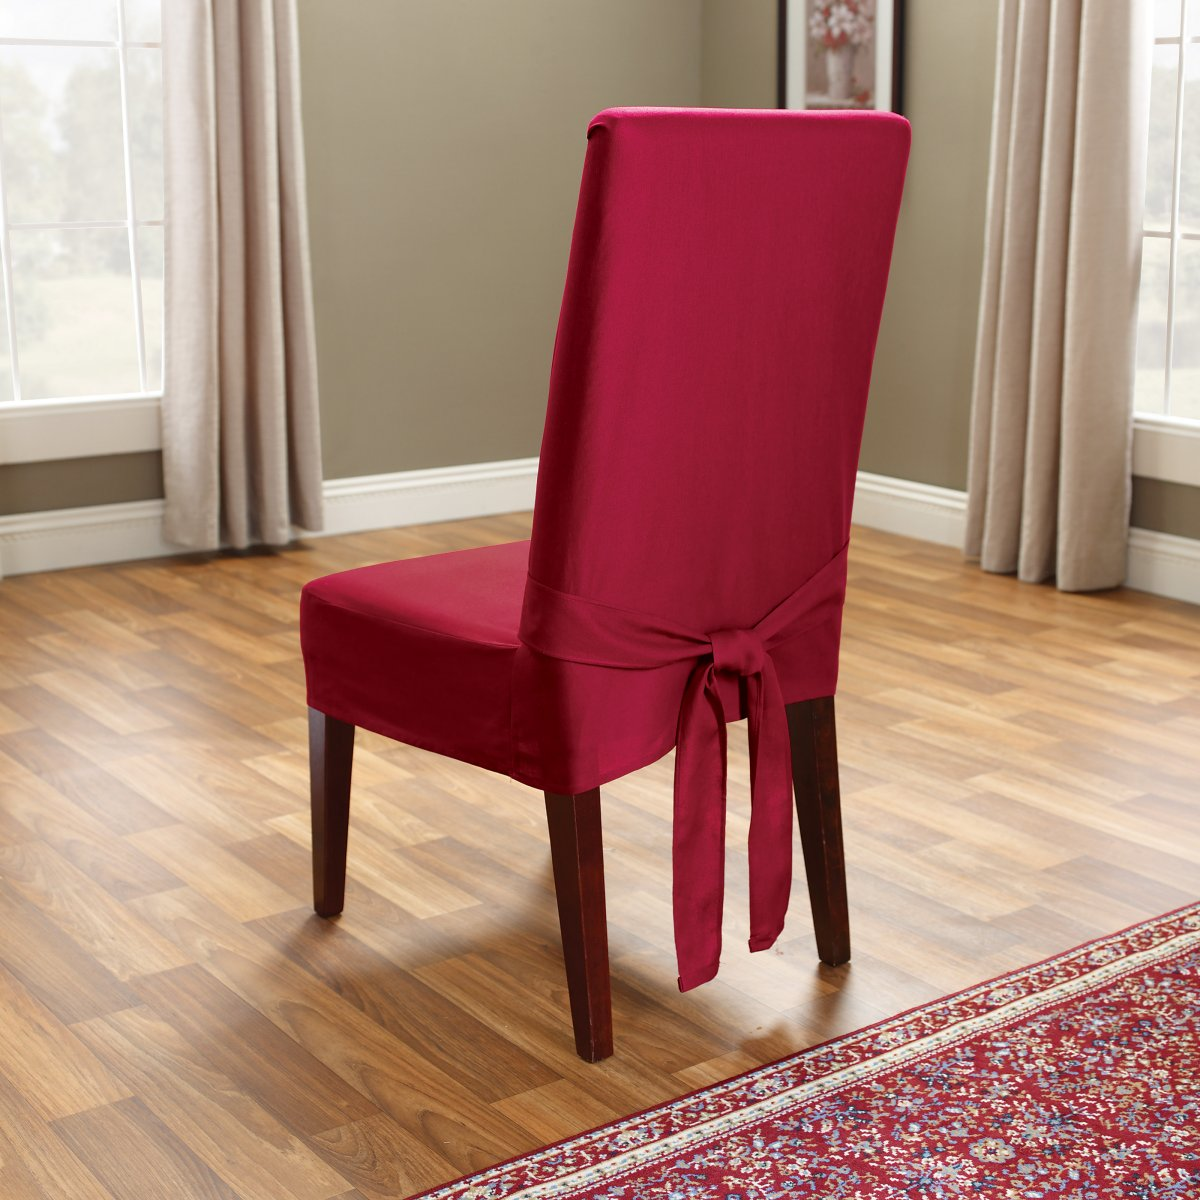 Cover for dining chair Photo - 1